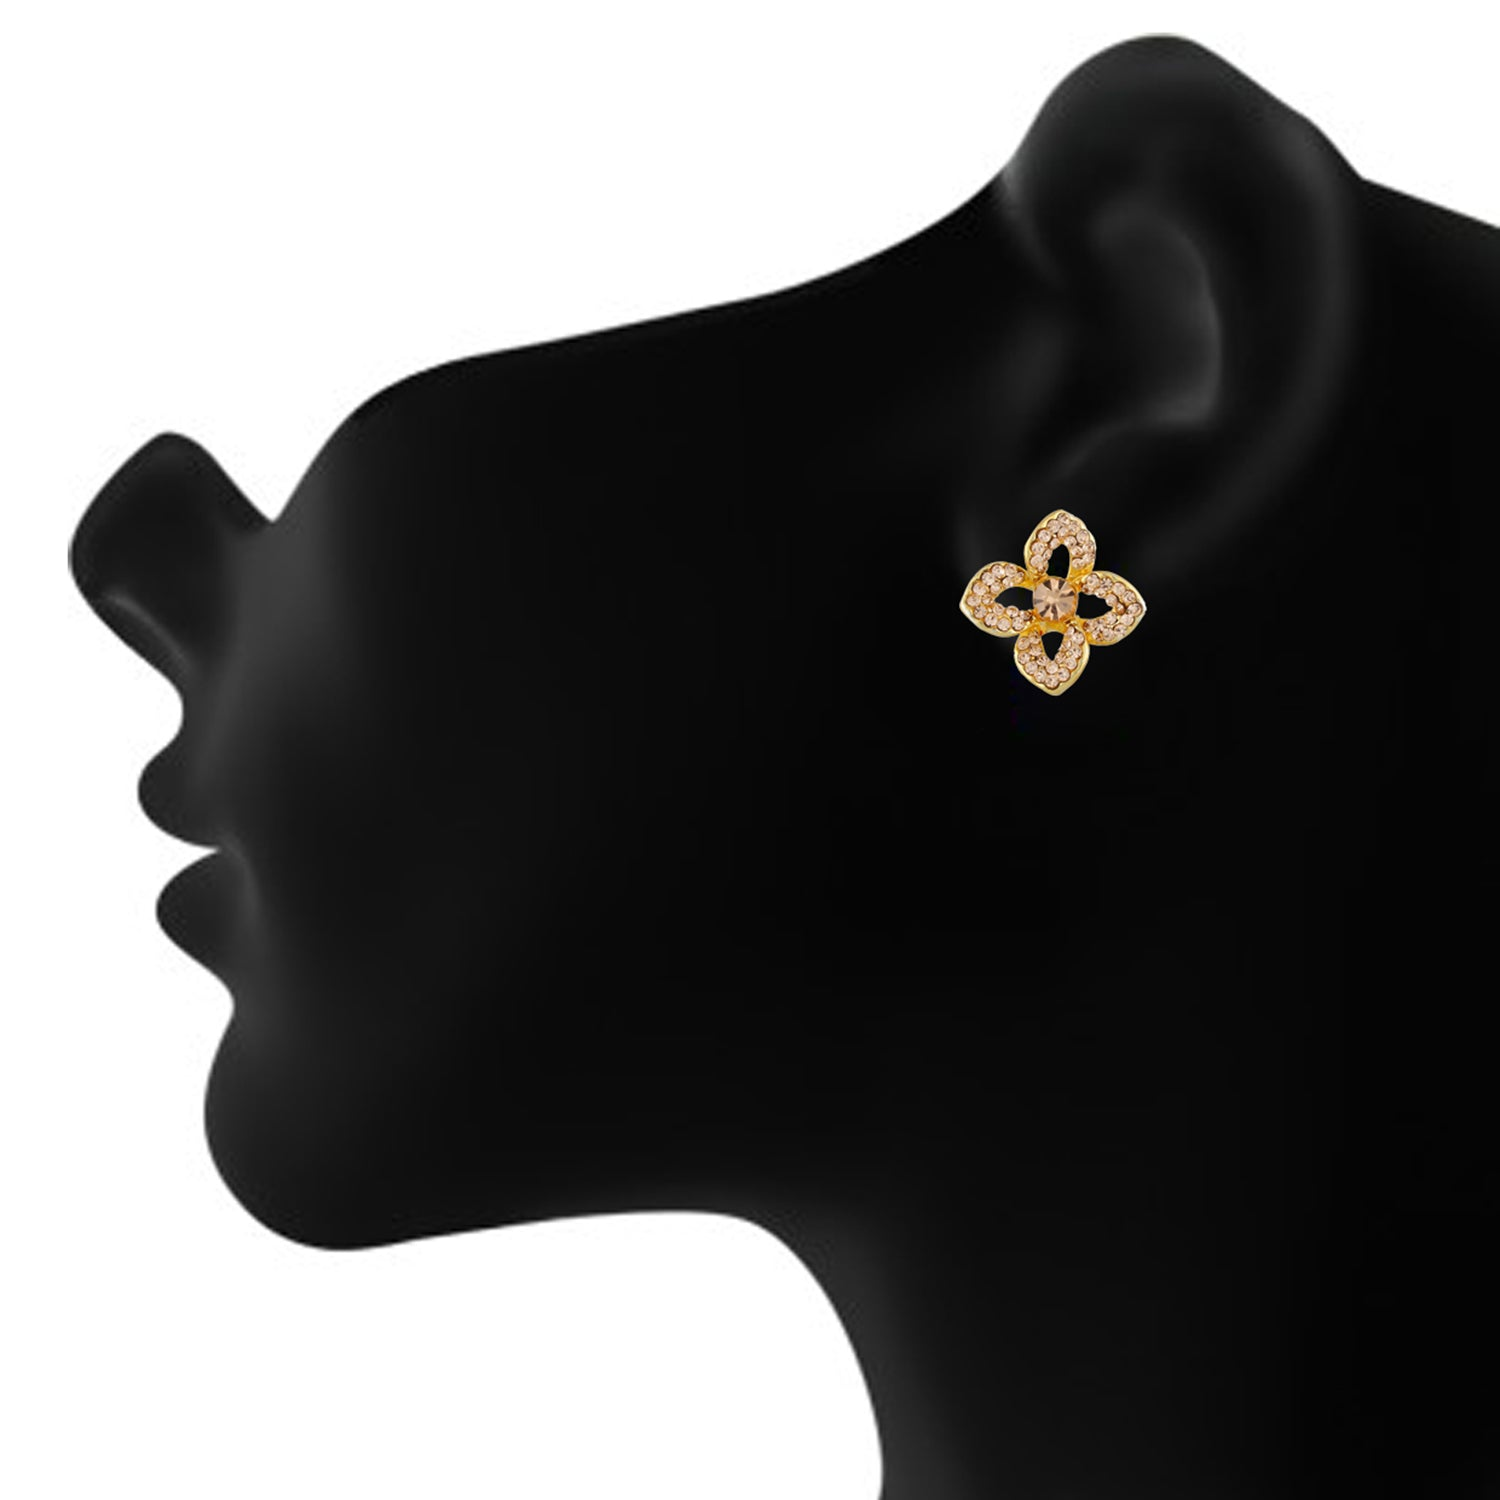 Stylish Beige and Gold Colour Floral Shape Alloy Clip On Earrings for Girls with on Pierced Ears